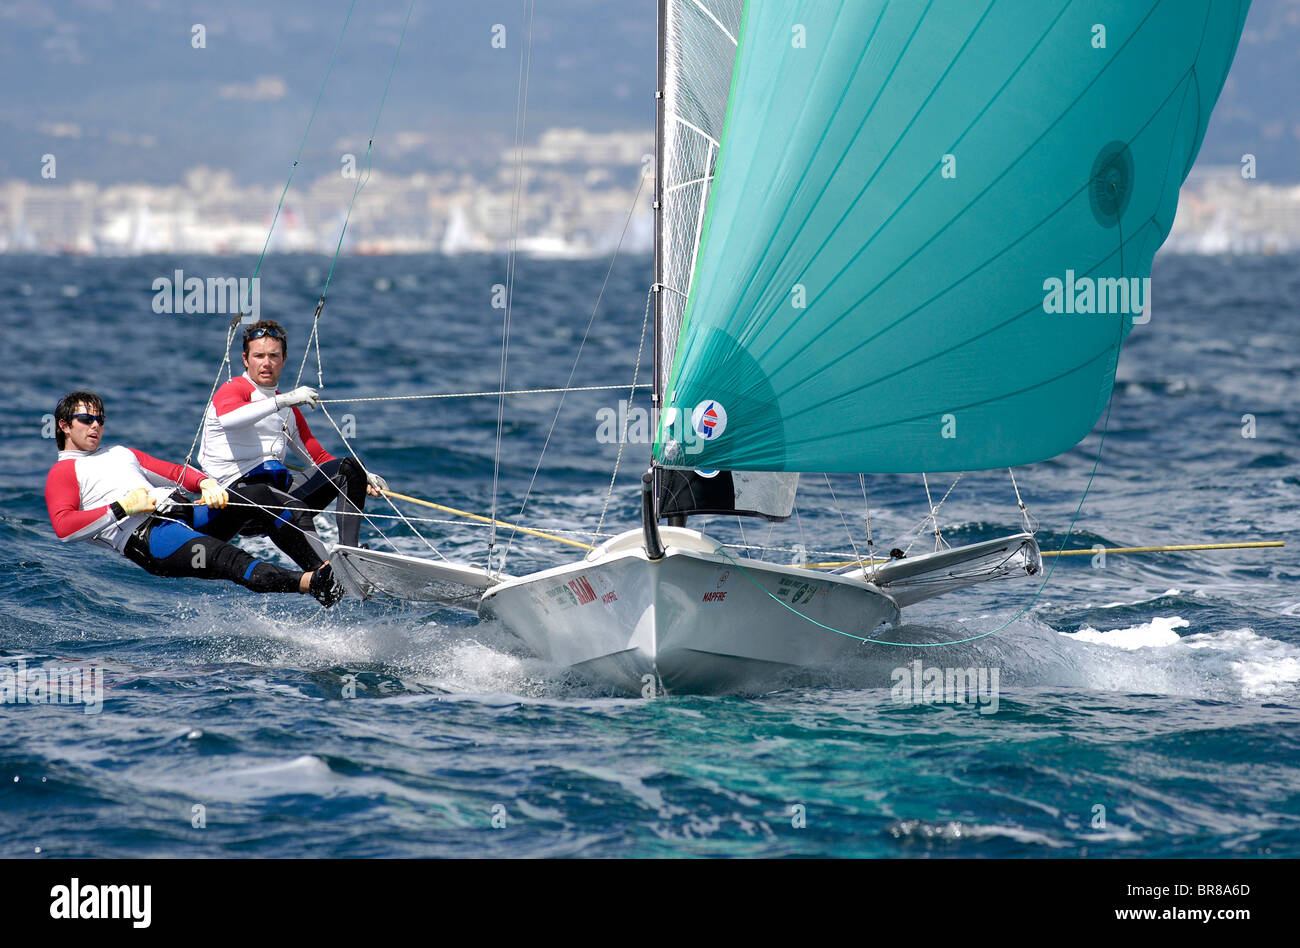 49er 'IRL25' with Russell McGovern and Matt McGovern for Ireland during the Princess Sofia Regatta, Olympic - Stock Image